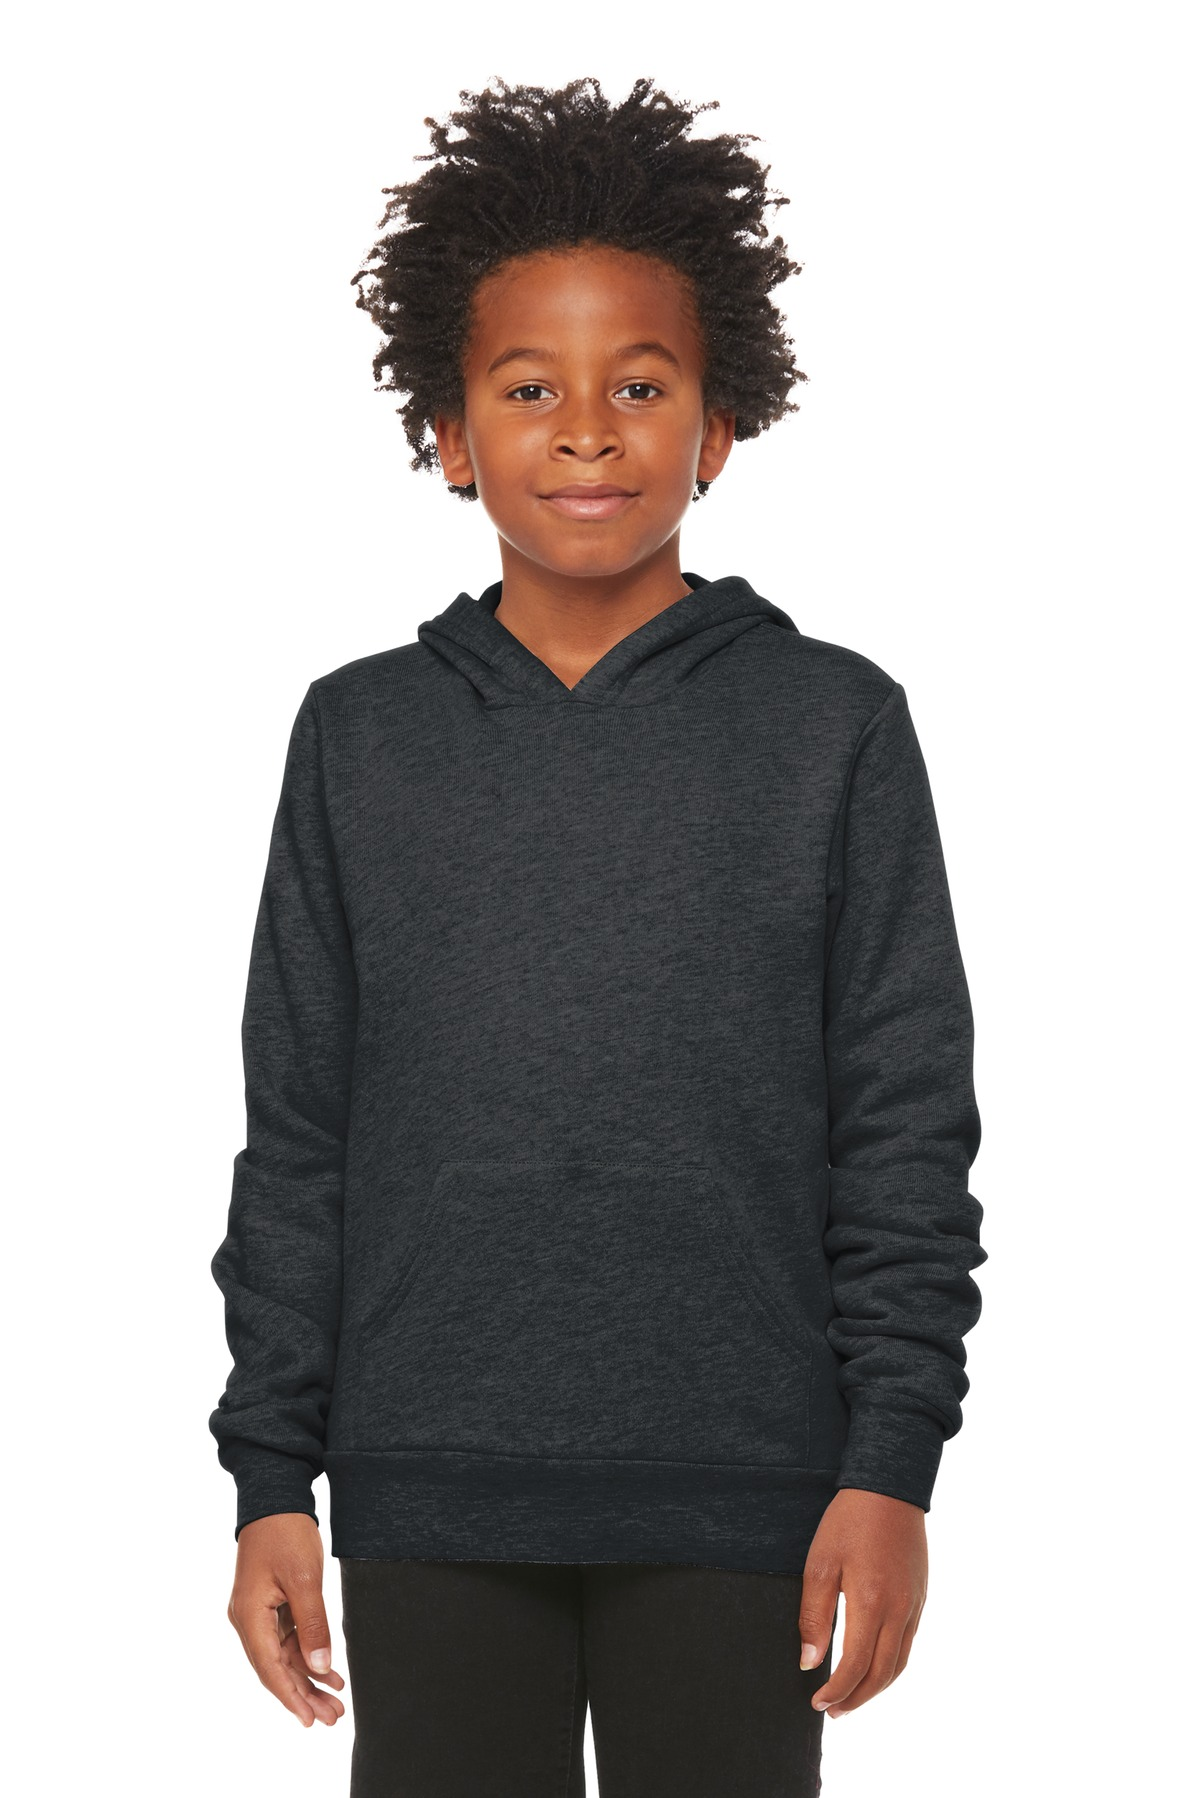 BELLA+CANVAS  ®  Youth Sponge Fleece Pullover Hoodie BC3719Y - Dark Grey Heather